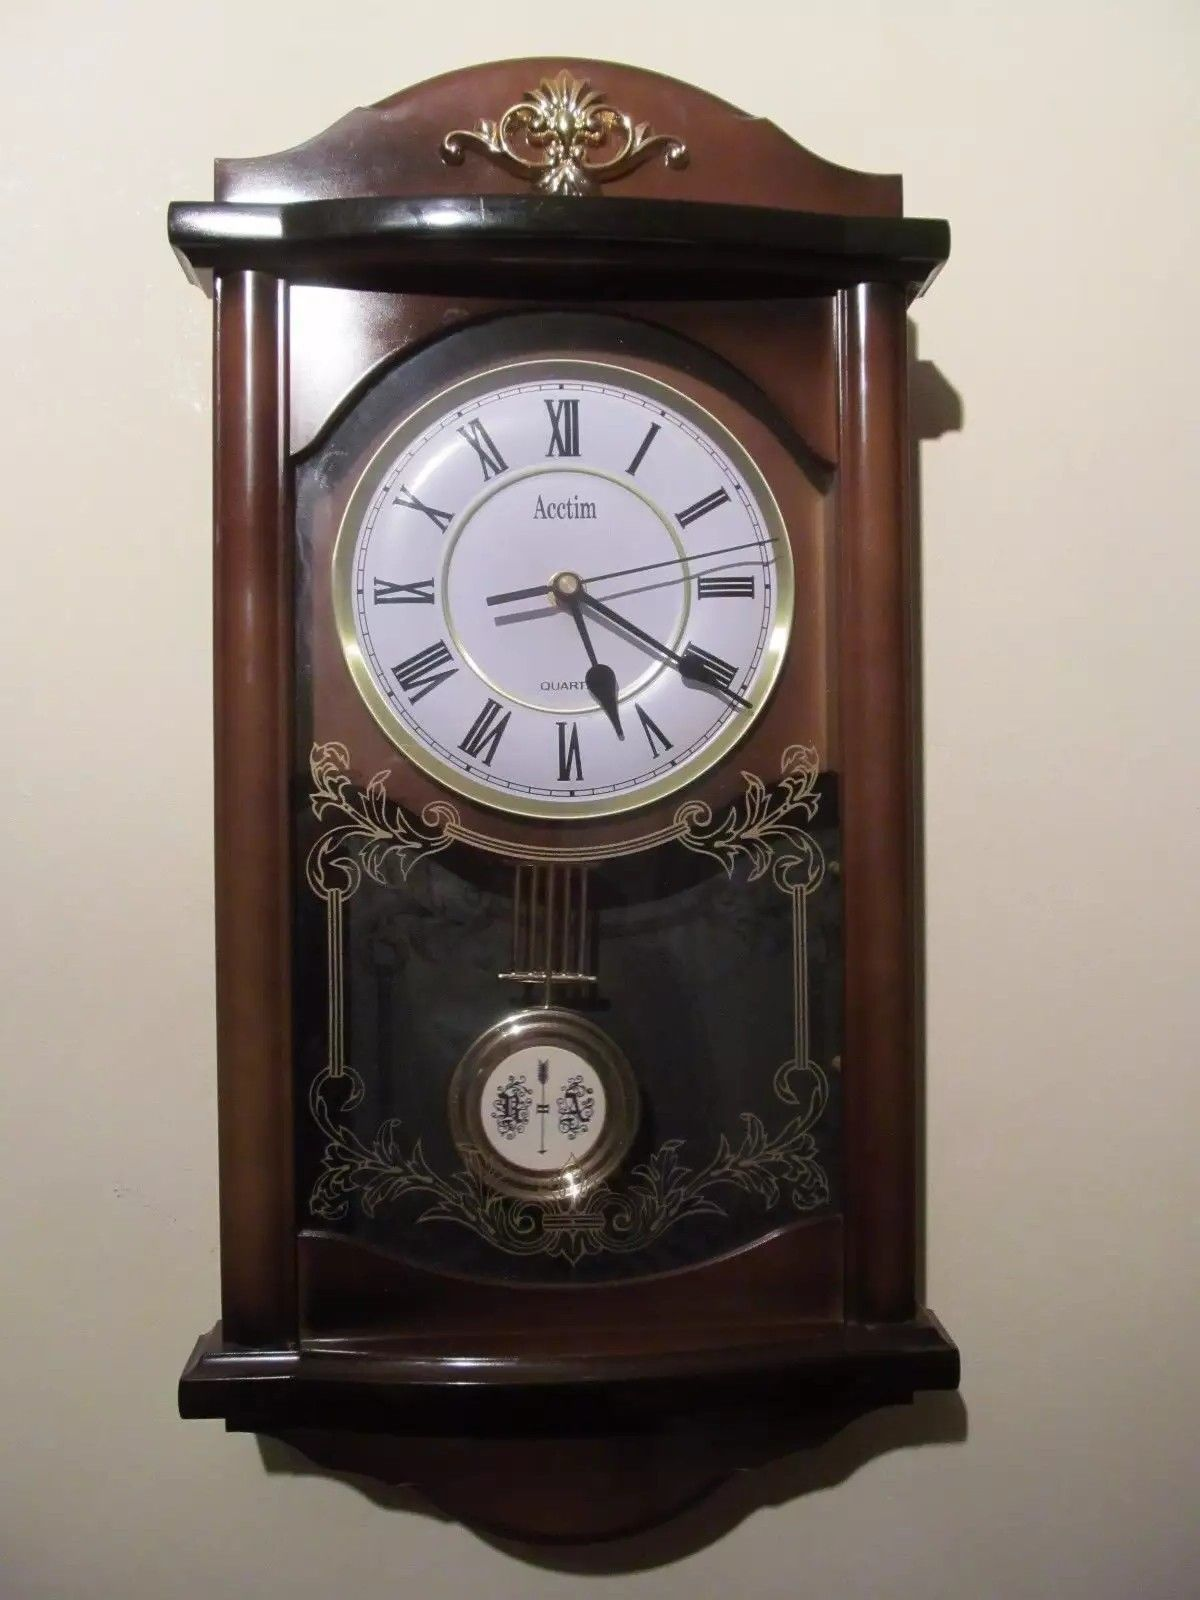 Pin By Zeppy On Clock Pinterest Wall Clocks And Plastic Case